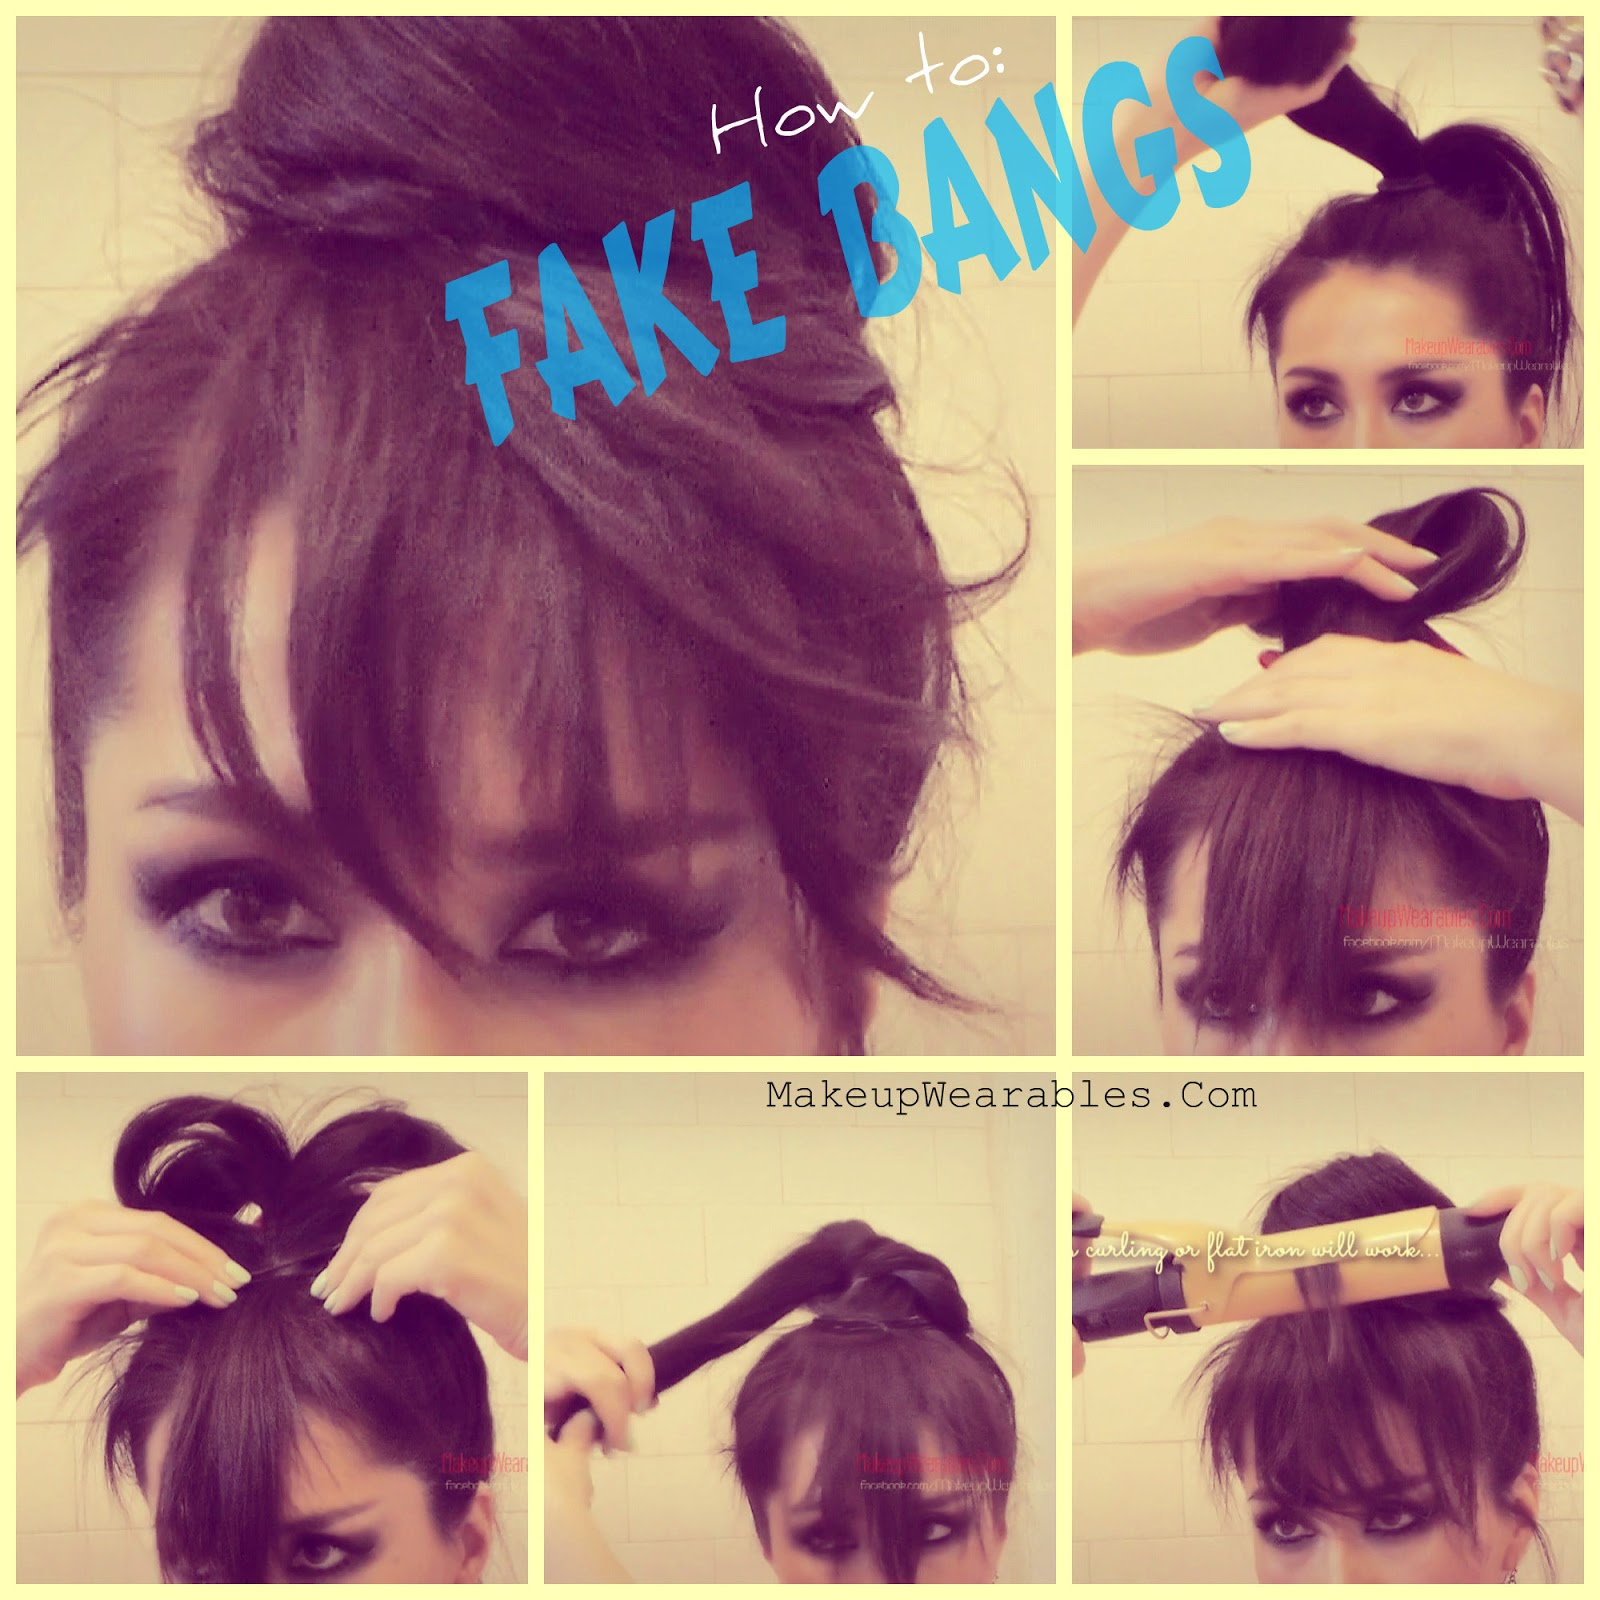 How To Fake Bangs Cute Easy Bun Hairstyles Cute Diy Projects